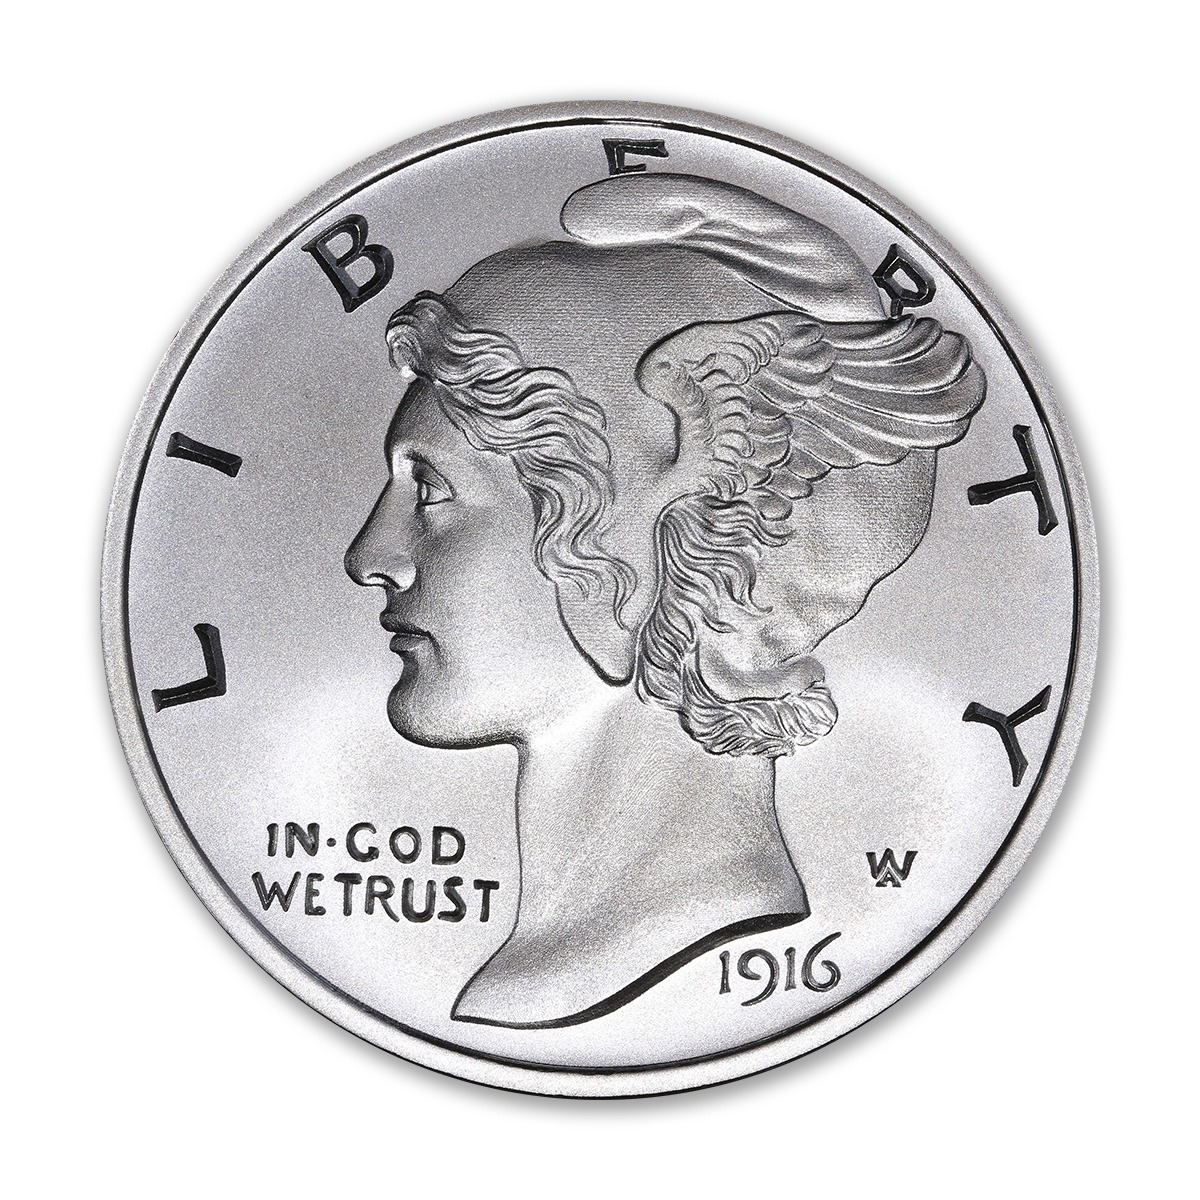 NEW MERCURY DIME TRIBUTE – 2 TROY OUNCE – 50MM